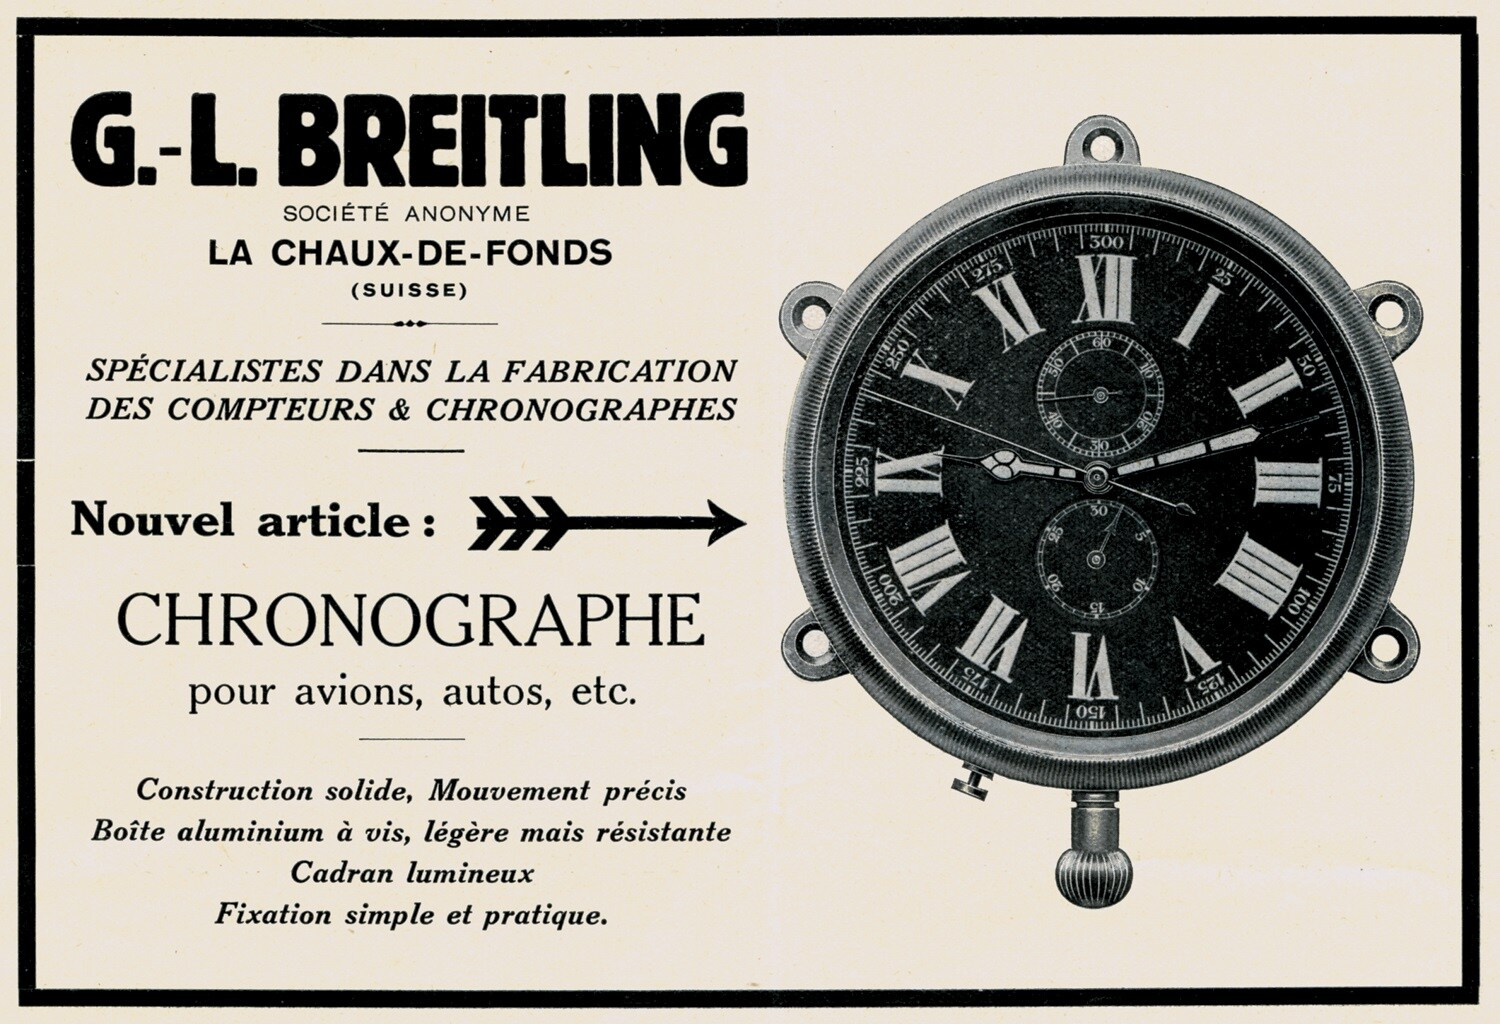 1931 advertisement for an on-board chronograph made for aircraft or automobiles. (PPR/Breitling)